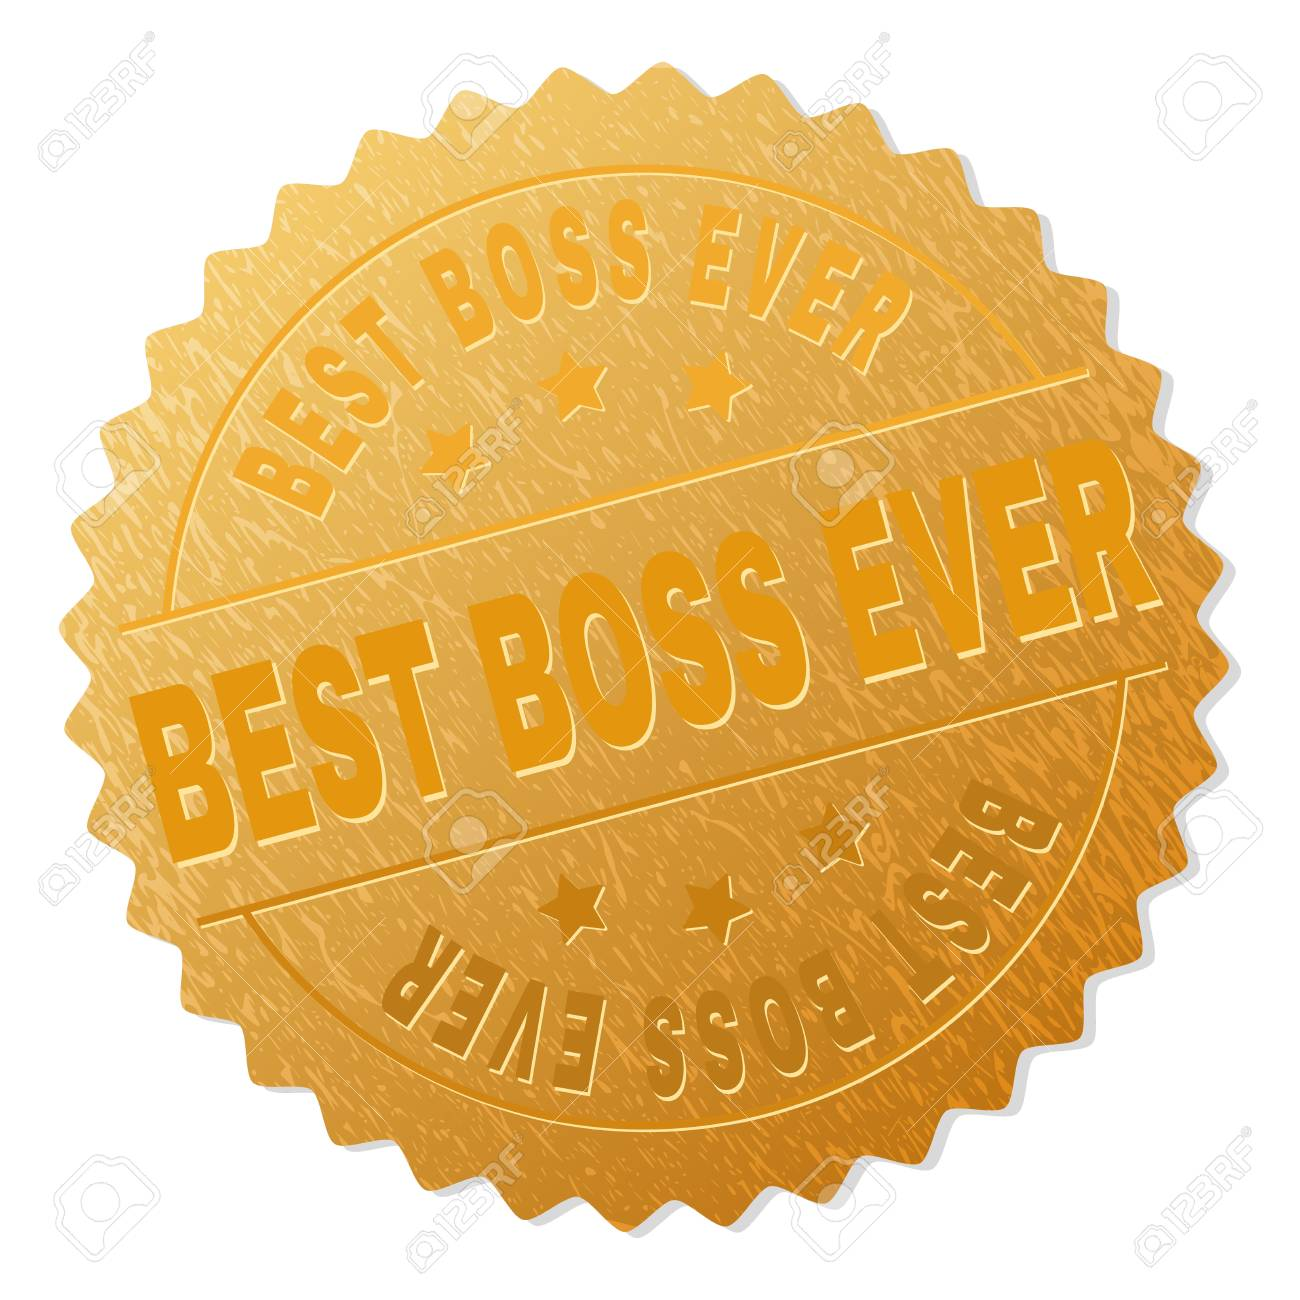 best boss ever gold stamp award vector gold award with best